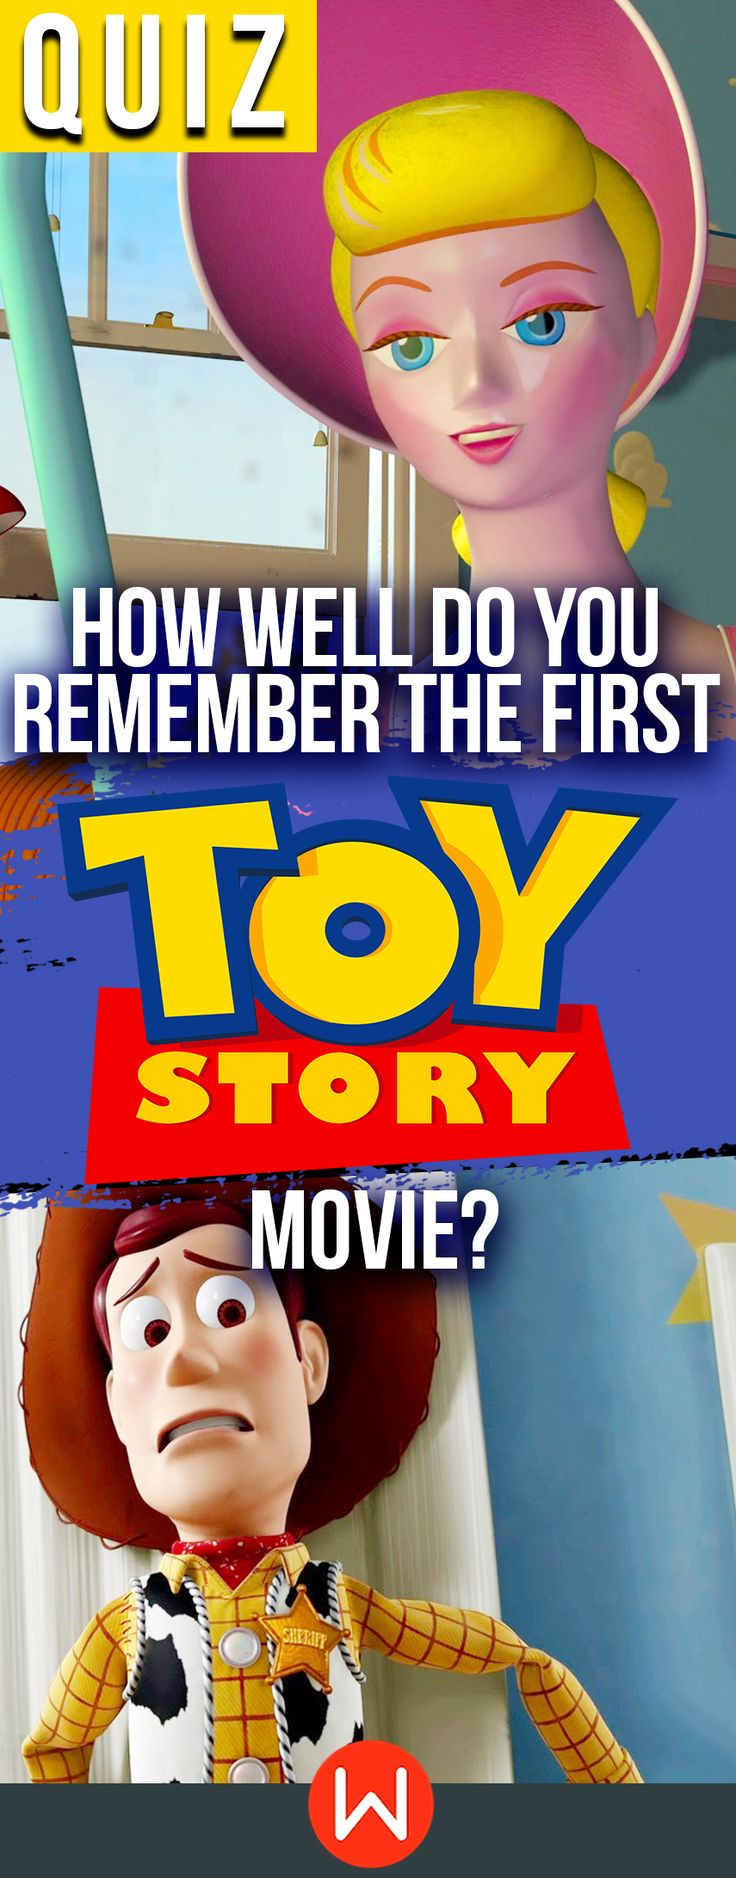 Disney Quiz: Do you remember Toy Story 1? Let's see if you know everything about the first Toy Story movie. Disney trivia, Woody, Buzz Lightyear, Jessie, Zurg...buzzfeed quizzes, playbuzz quiz, fun quizzes, Disney bound. To infinity and beyond!